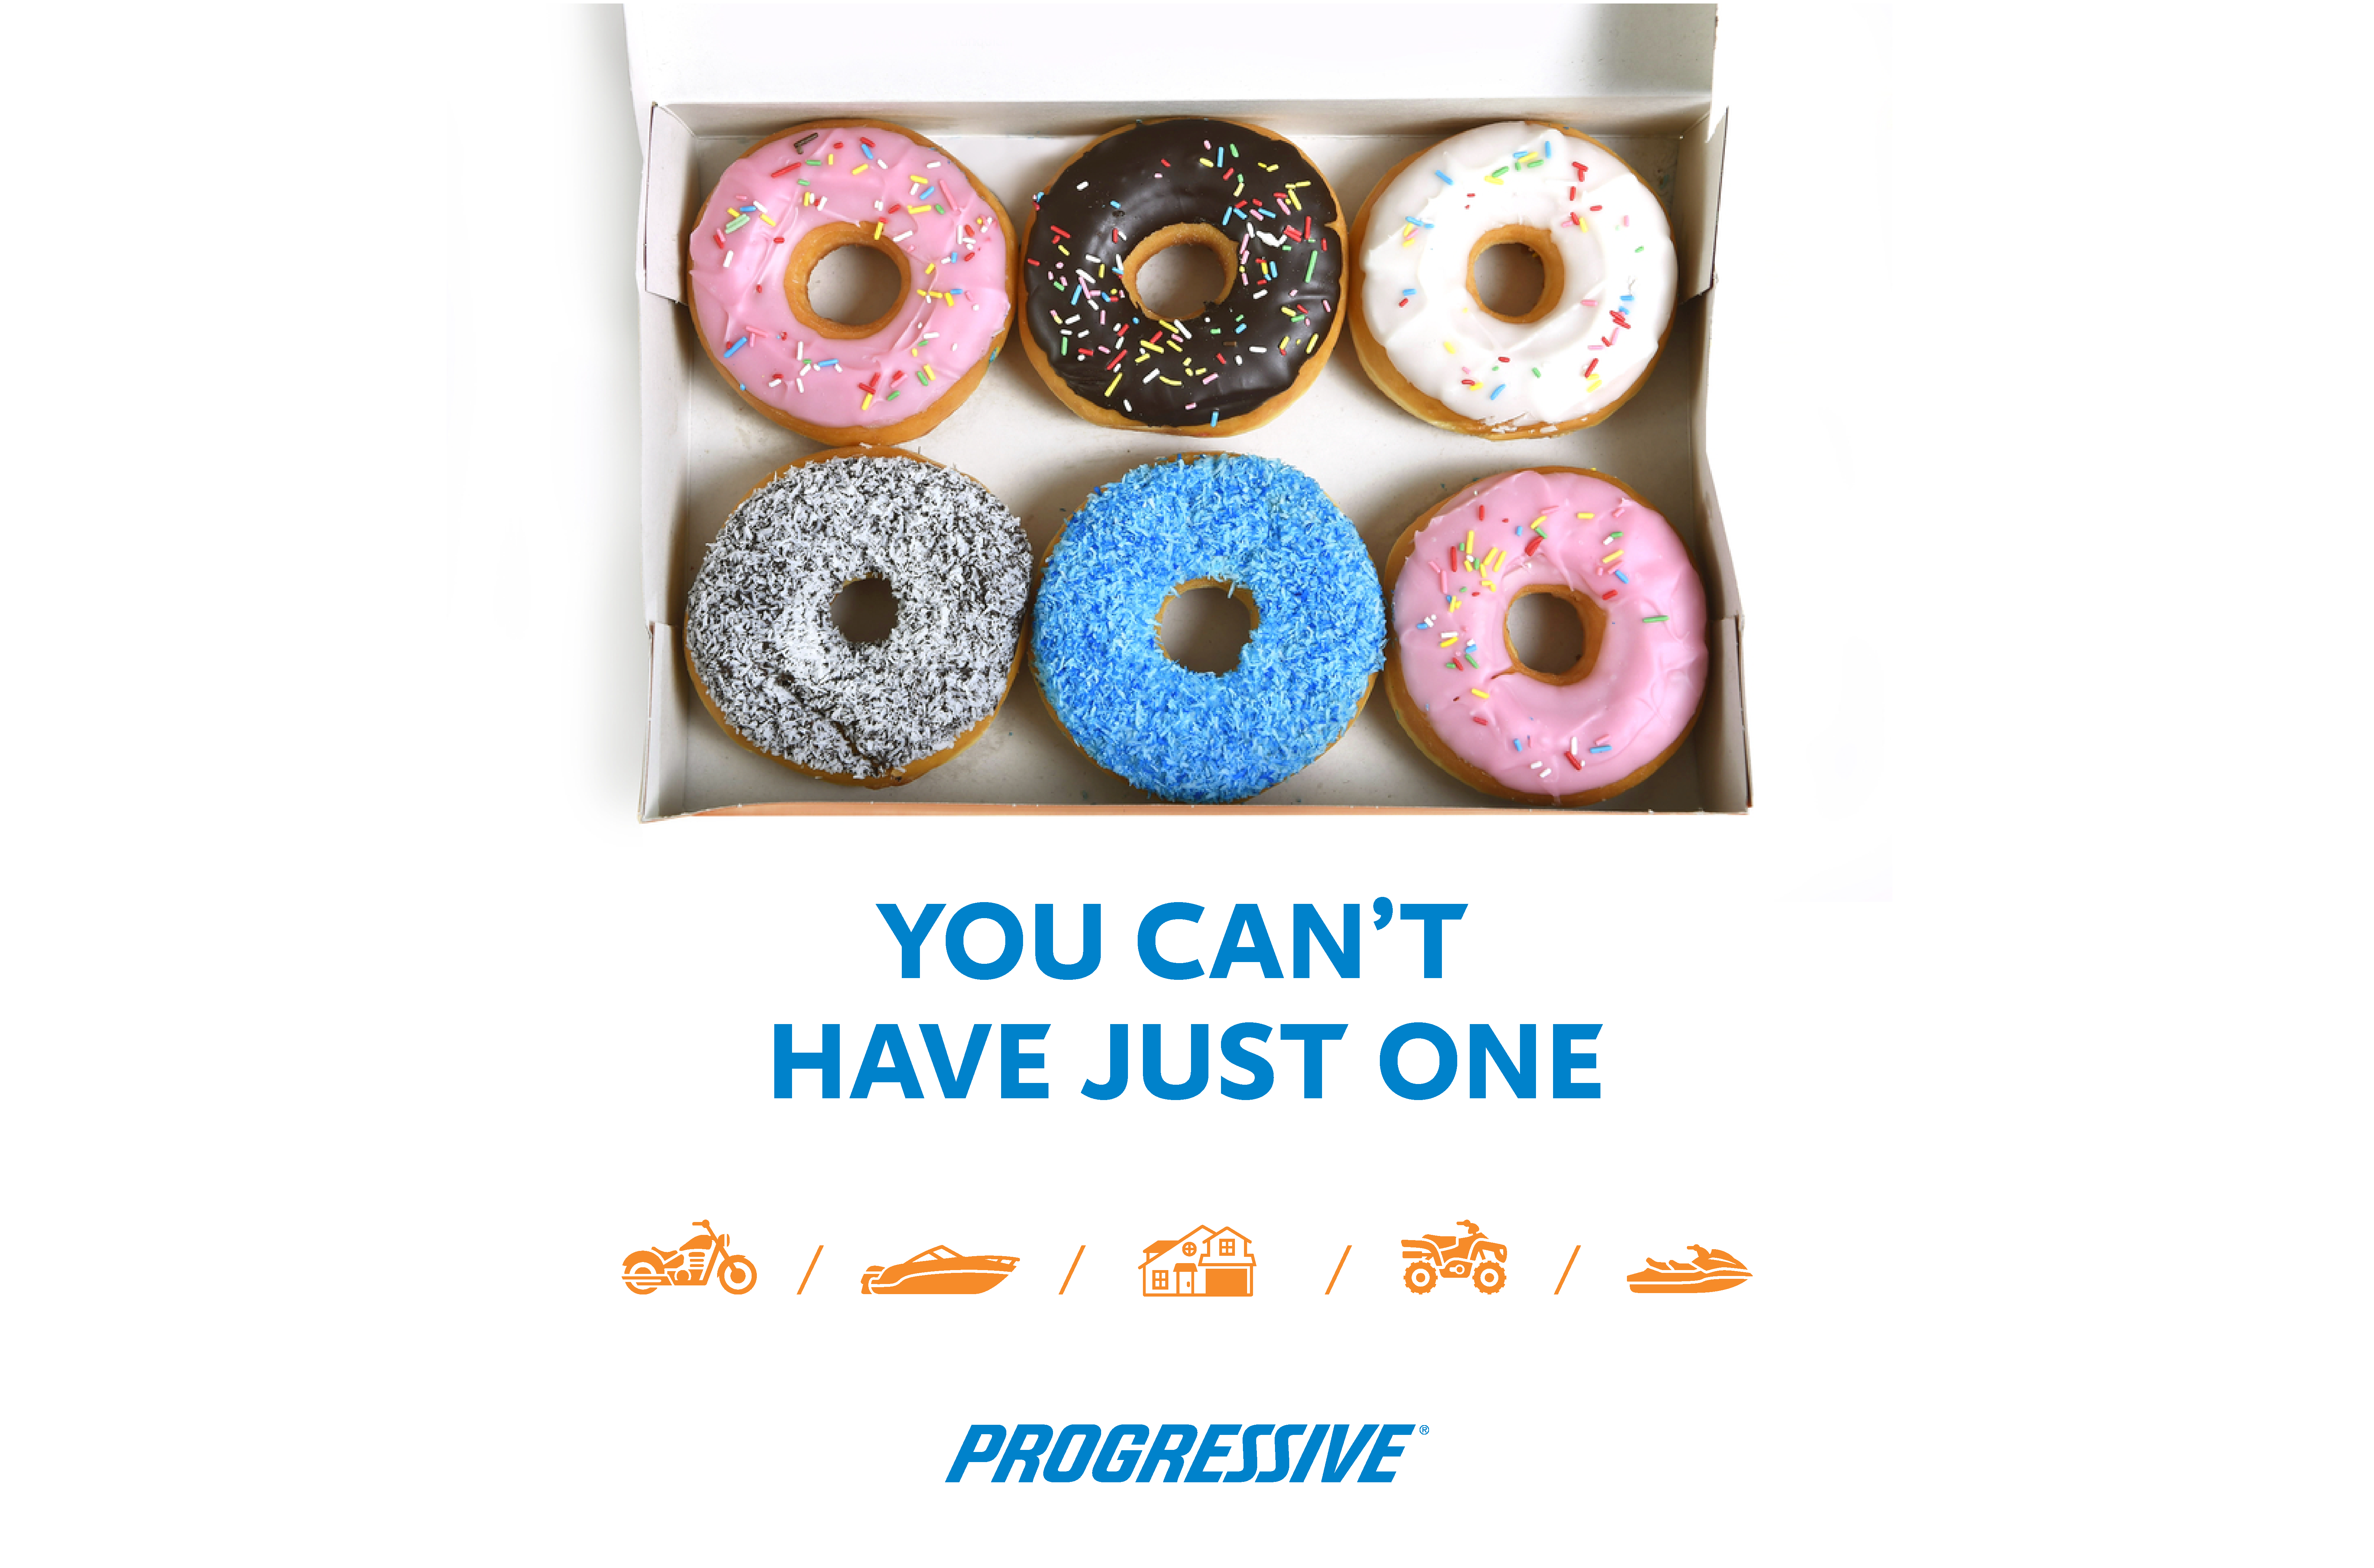 Donut hesitate to give us a call. We can help you bundle